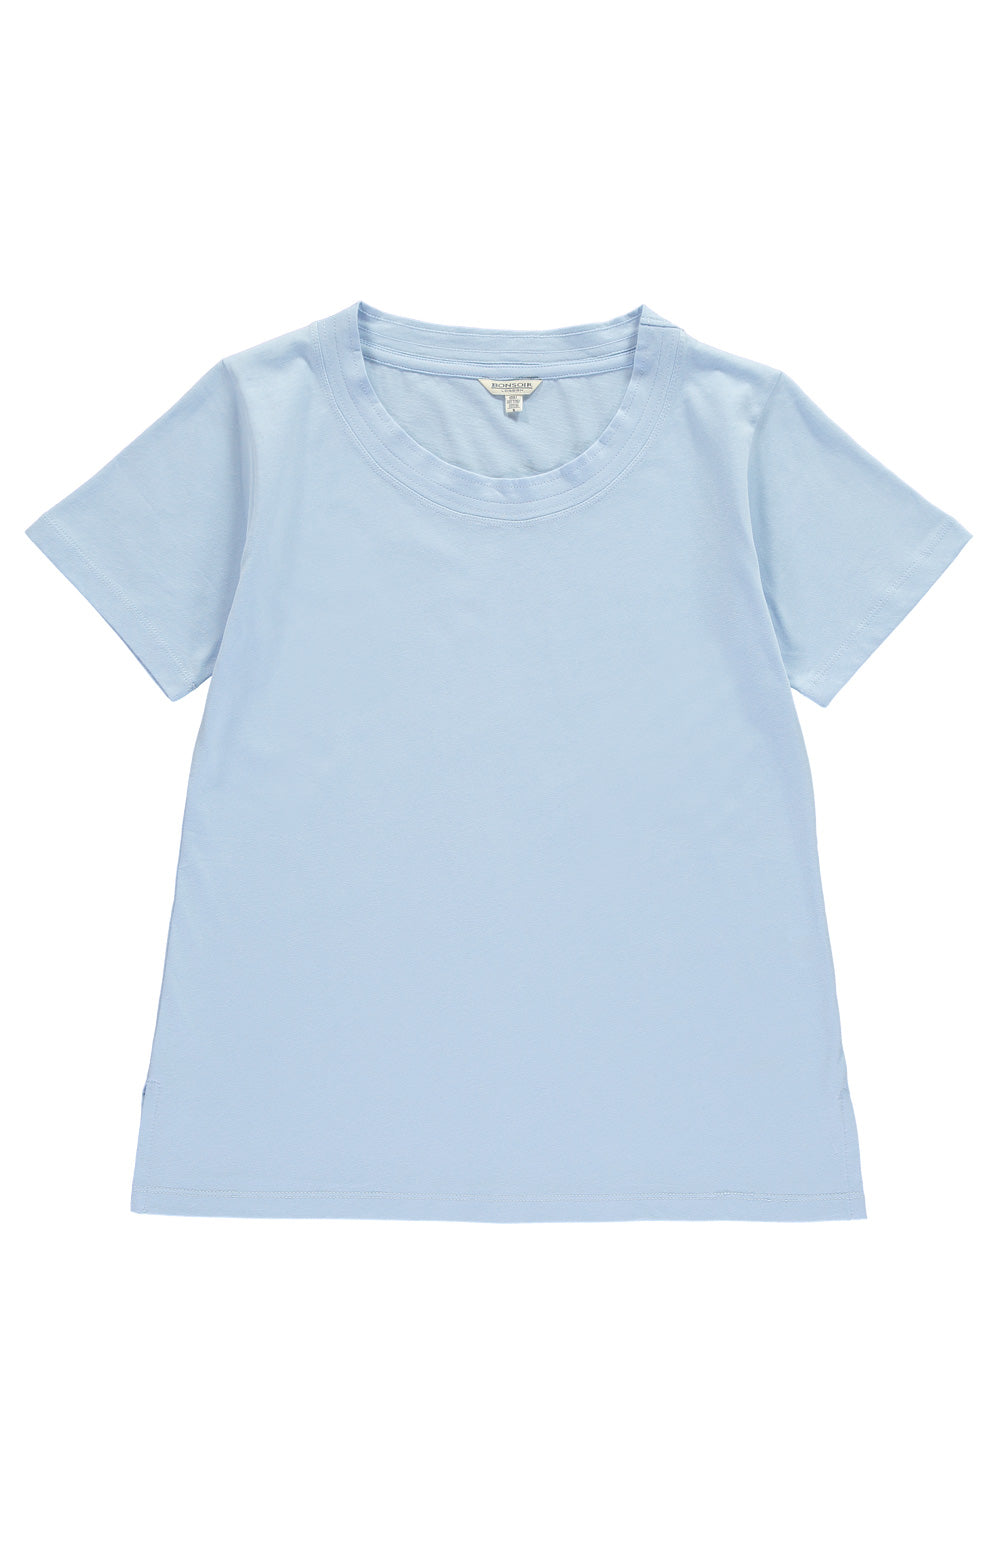 SCOOP NECK T-SHIRT - BLUE